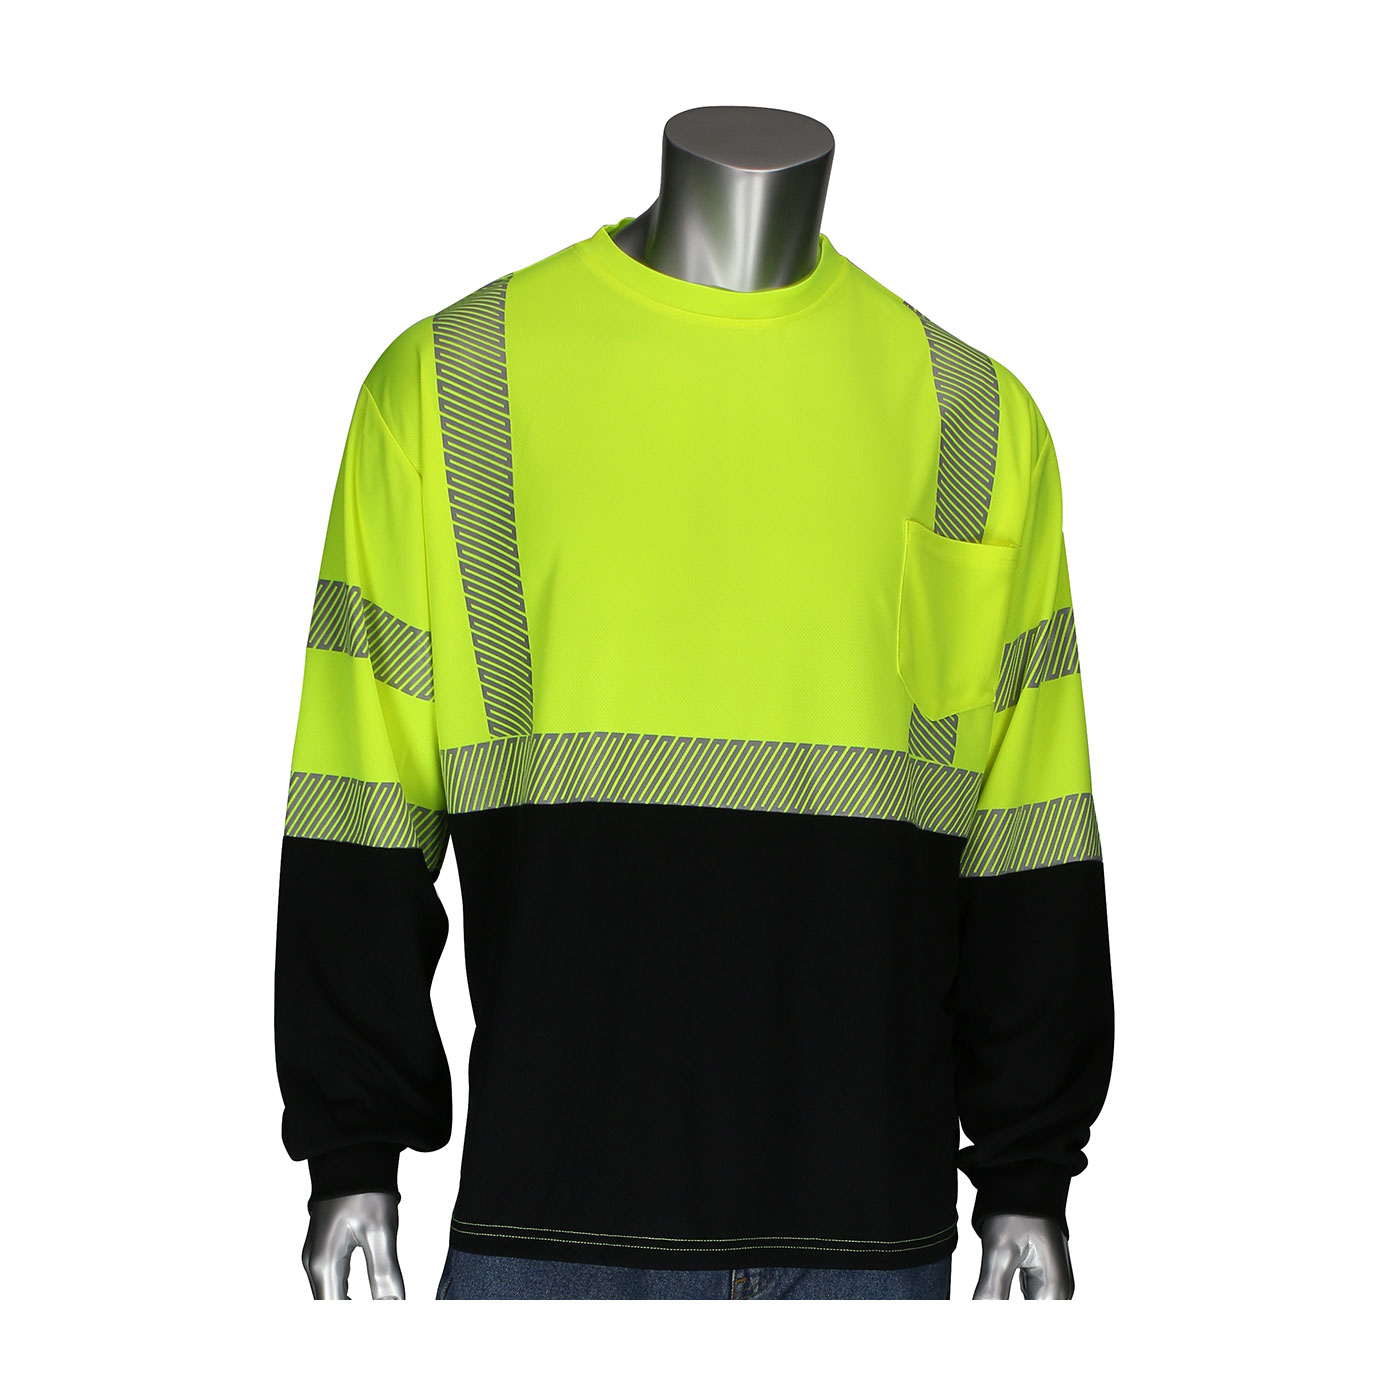 #312-1280B PIP® Class 3 Hi-Viz T-Shirts w/ Black Bottom, 2in Segmented Tape and Chest Pocket